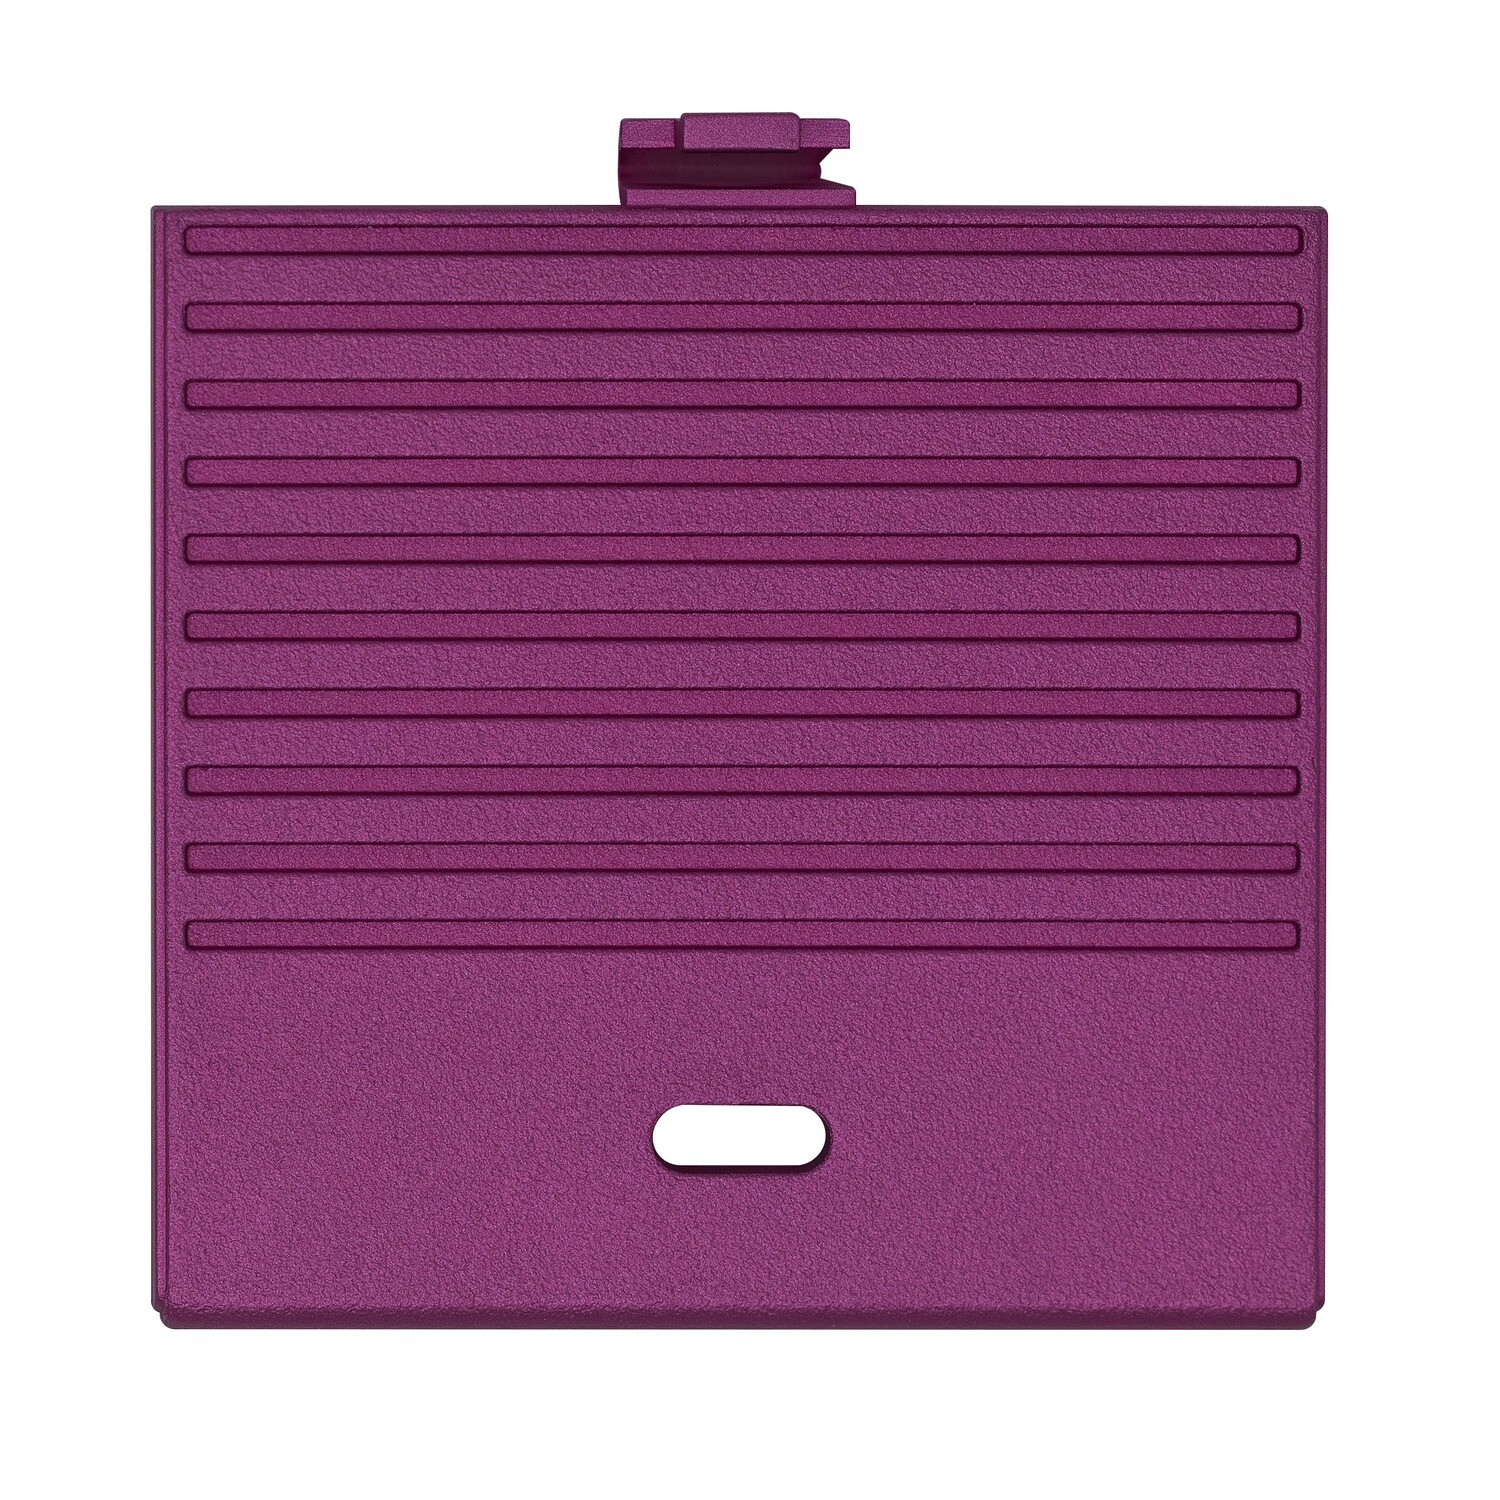 Game Boy Original USB-C Battery Cover (Pearl Pink)